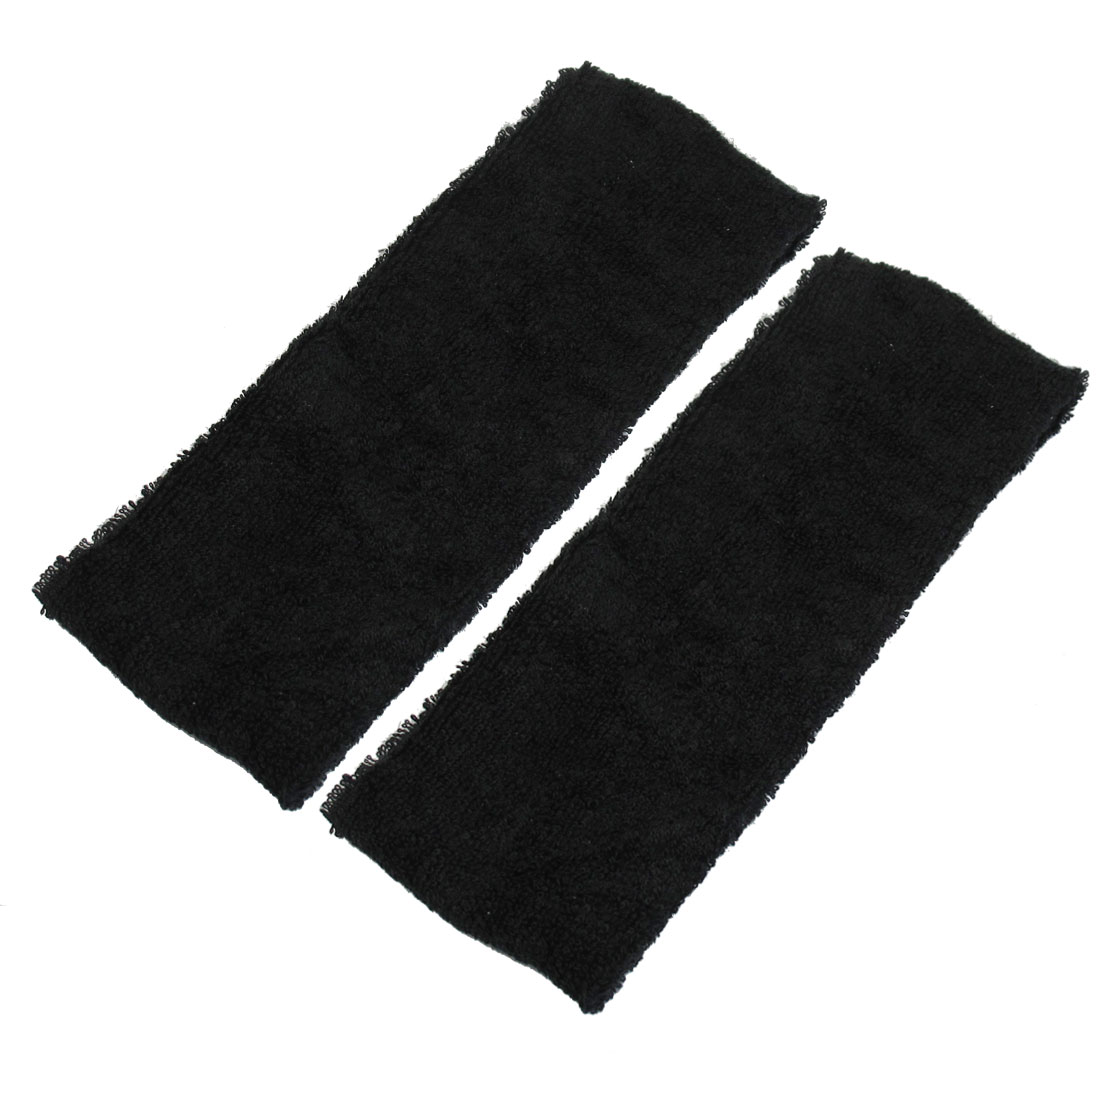 2 Pcs Black Terry Cloth 6cm Wide Elastic Sport Headband for Women